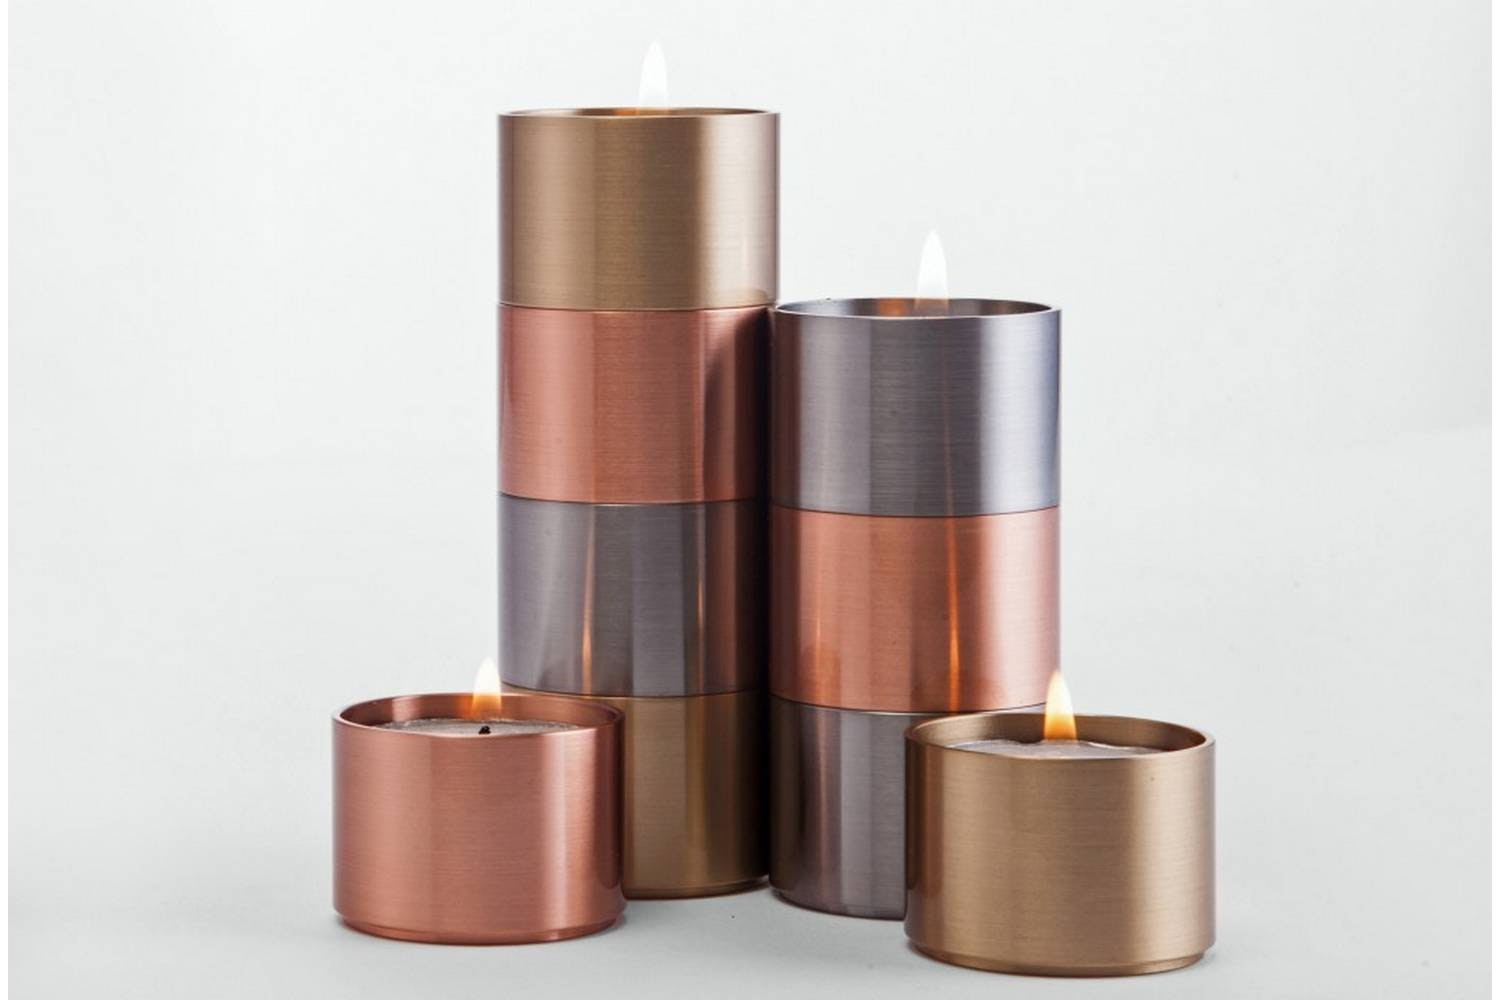 Trepas Candleholder by Peter Karpf for Architectmade